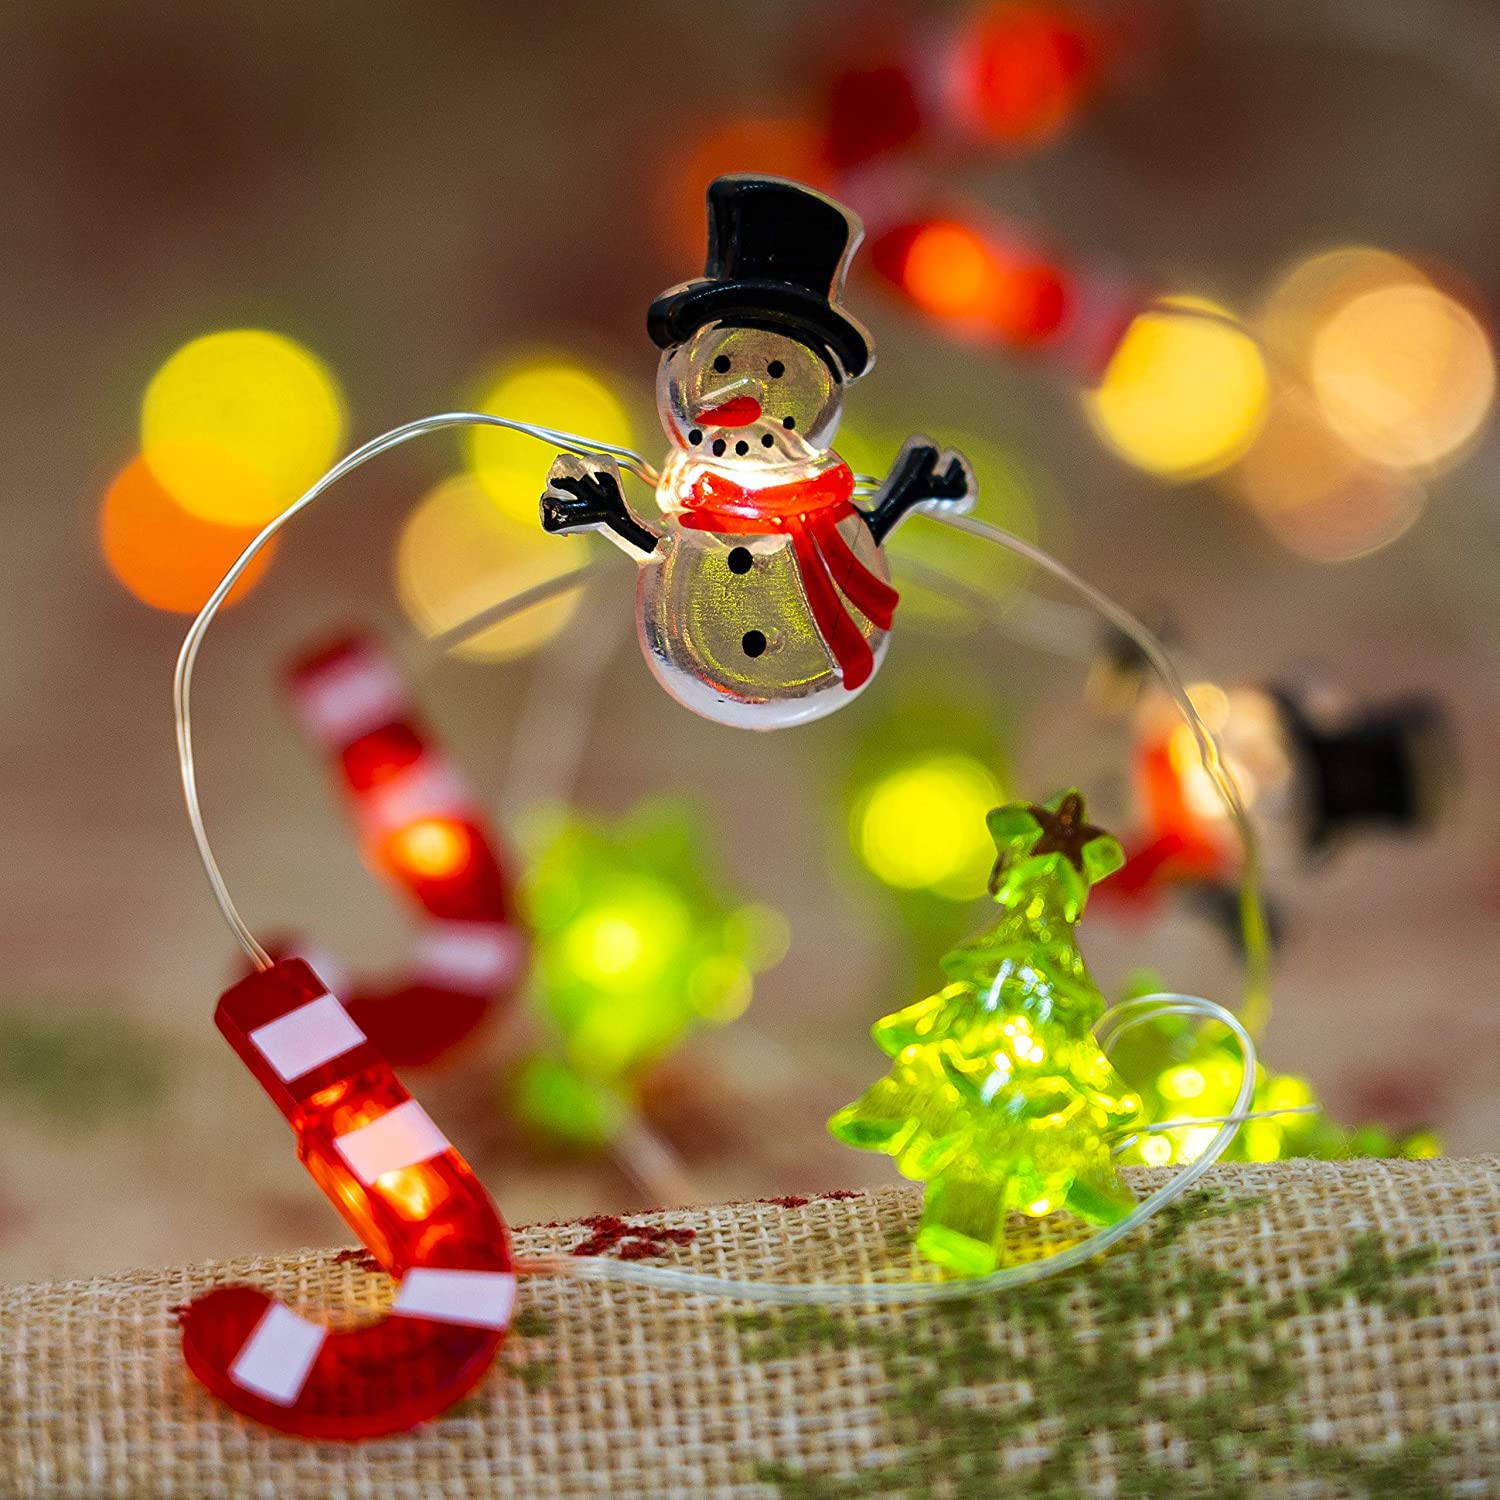 FUNPENY Christmas Snowman String Lights, 10 Ft 40 LED Waterproof Snowman Candy Canes Christmas Tree Copper Wire Fairy Light with 8 Modes, Indoor Outdoor Decor for Christmas Tree Holiday Party